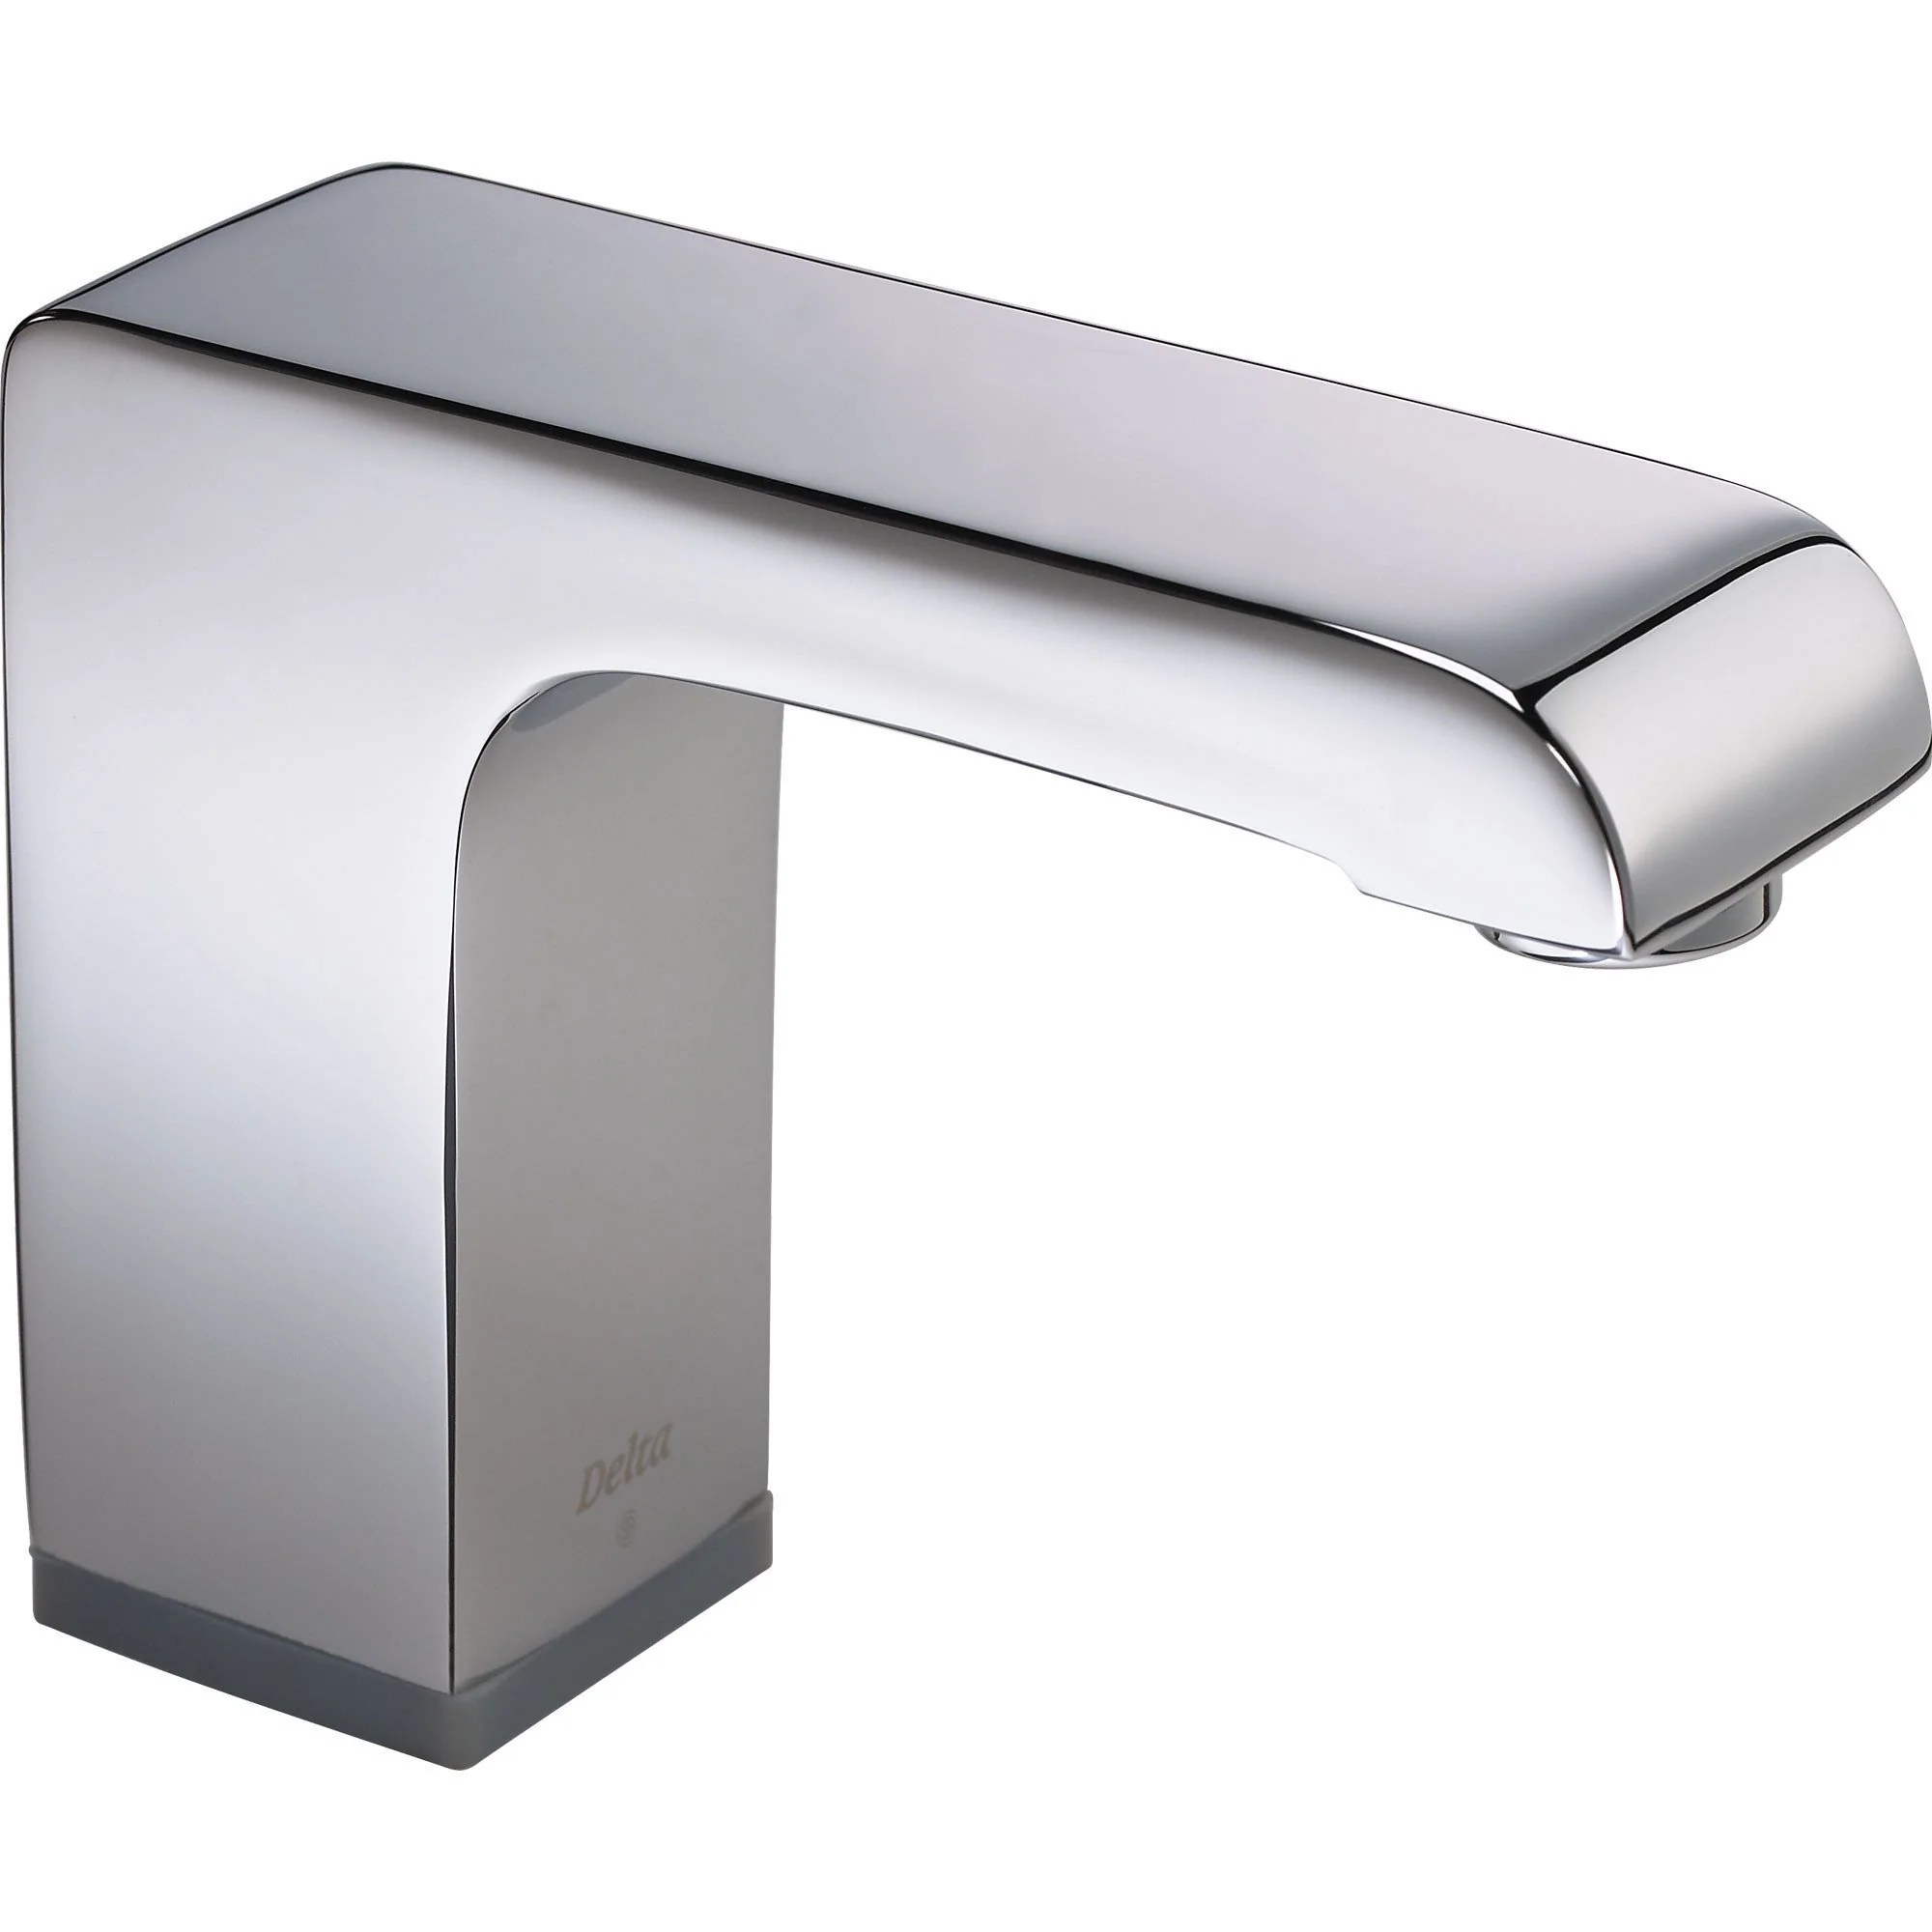 delta commercial hardwired touchless lavatory faucet in chrome 513630